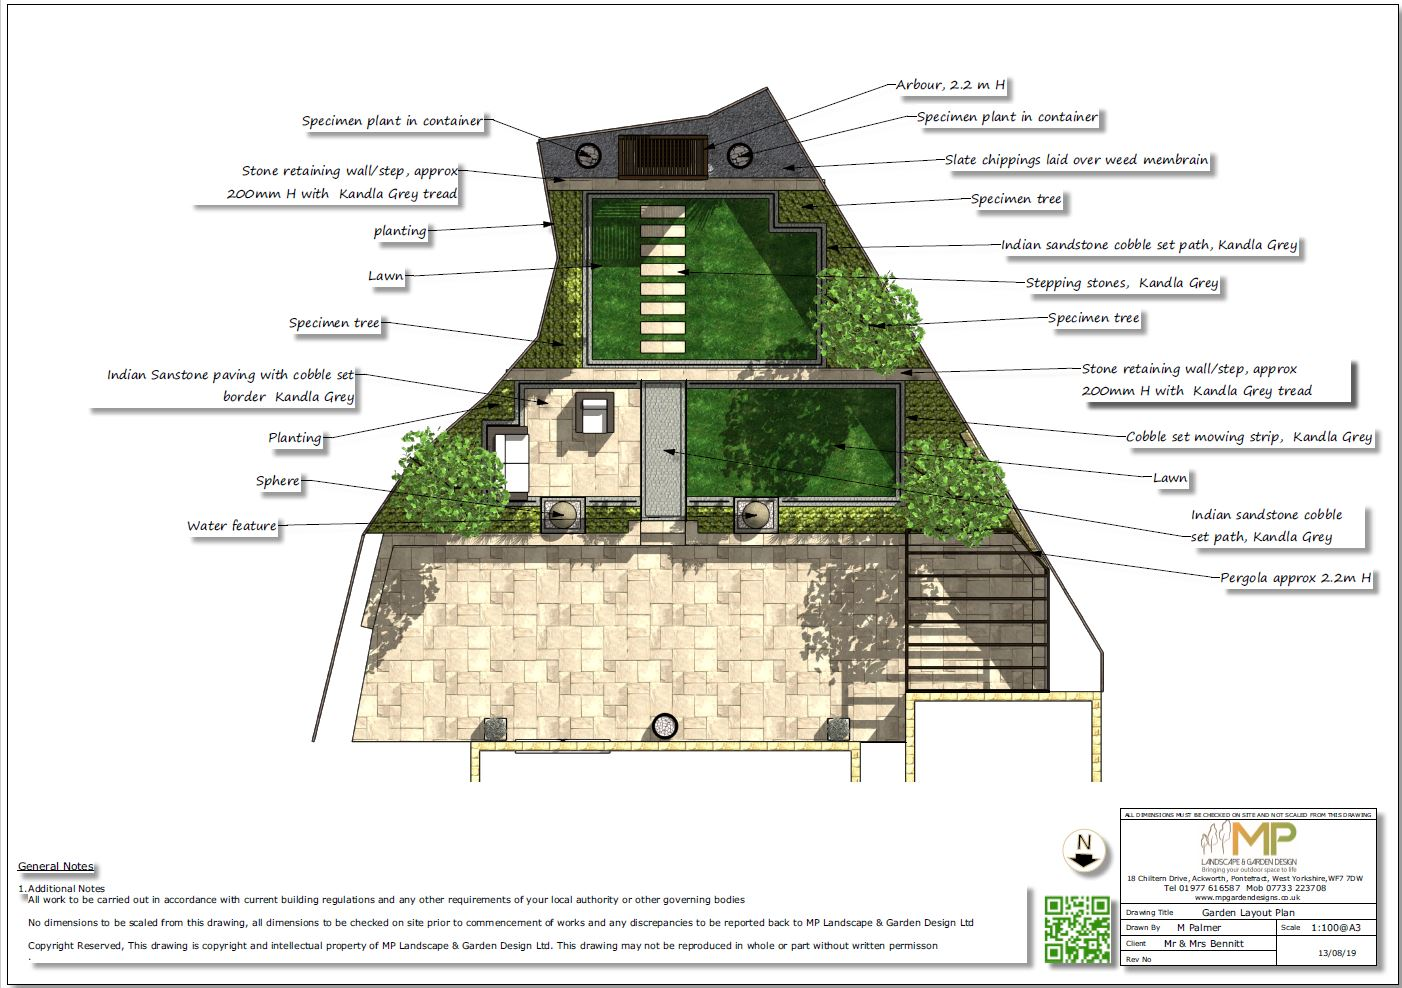 1-Garden layout plan for a new bild property in Wakefield